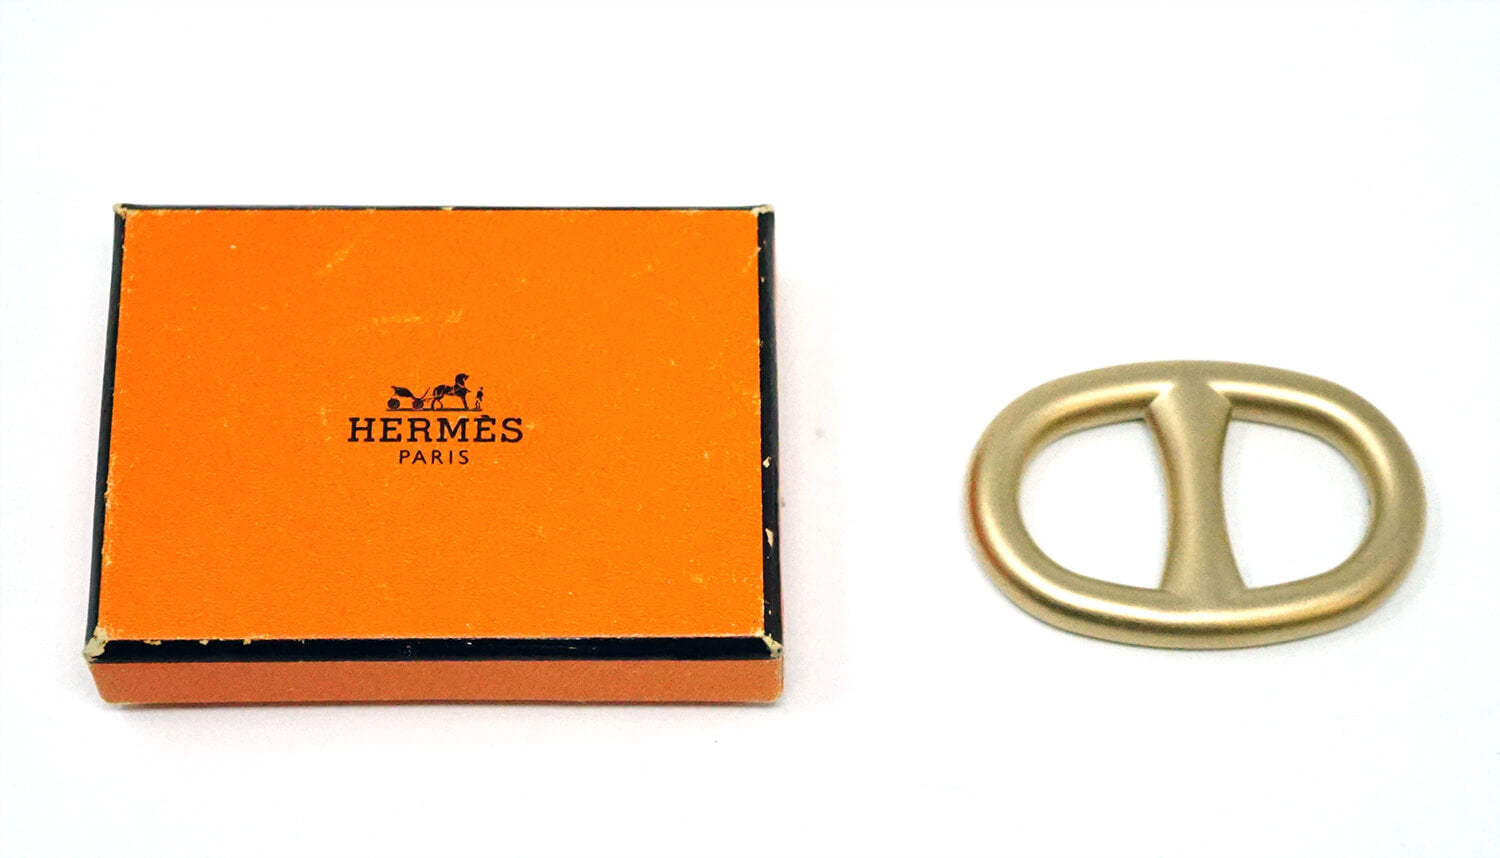 Hermes Paris Scarf Ring